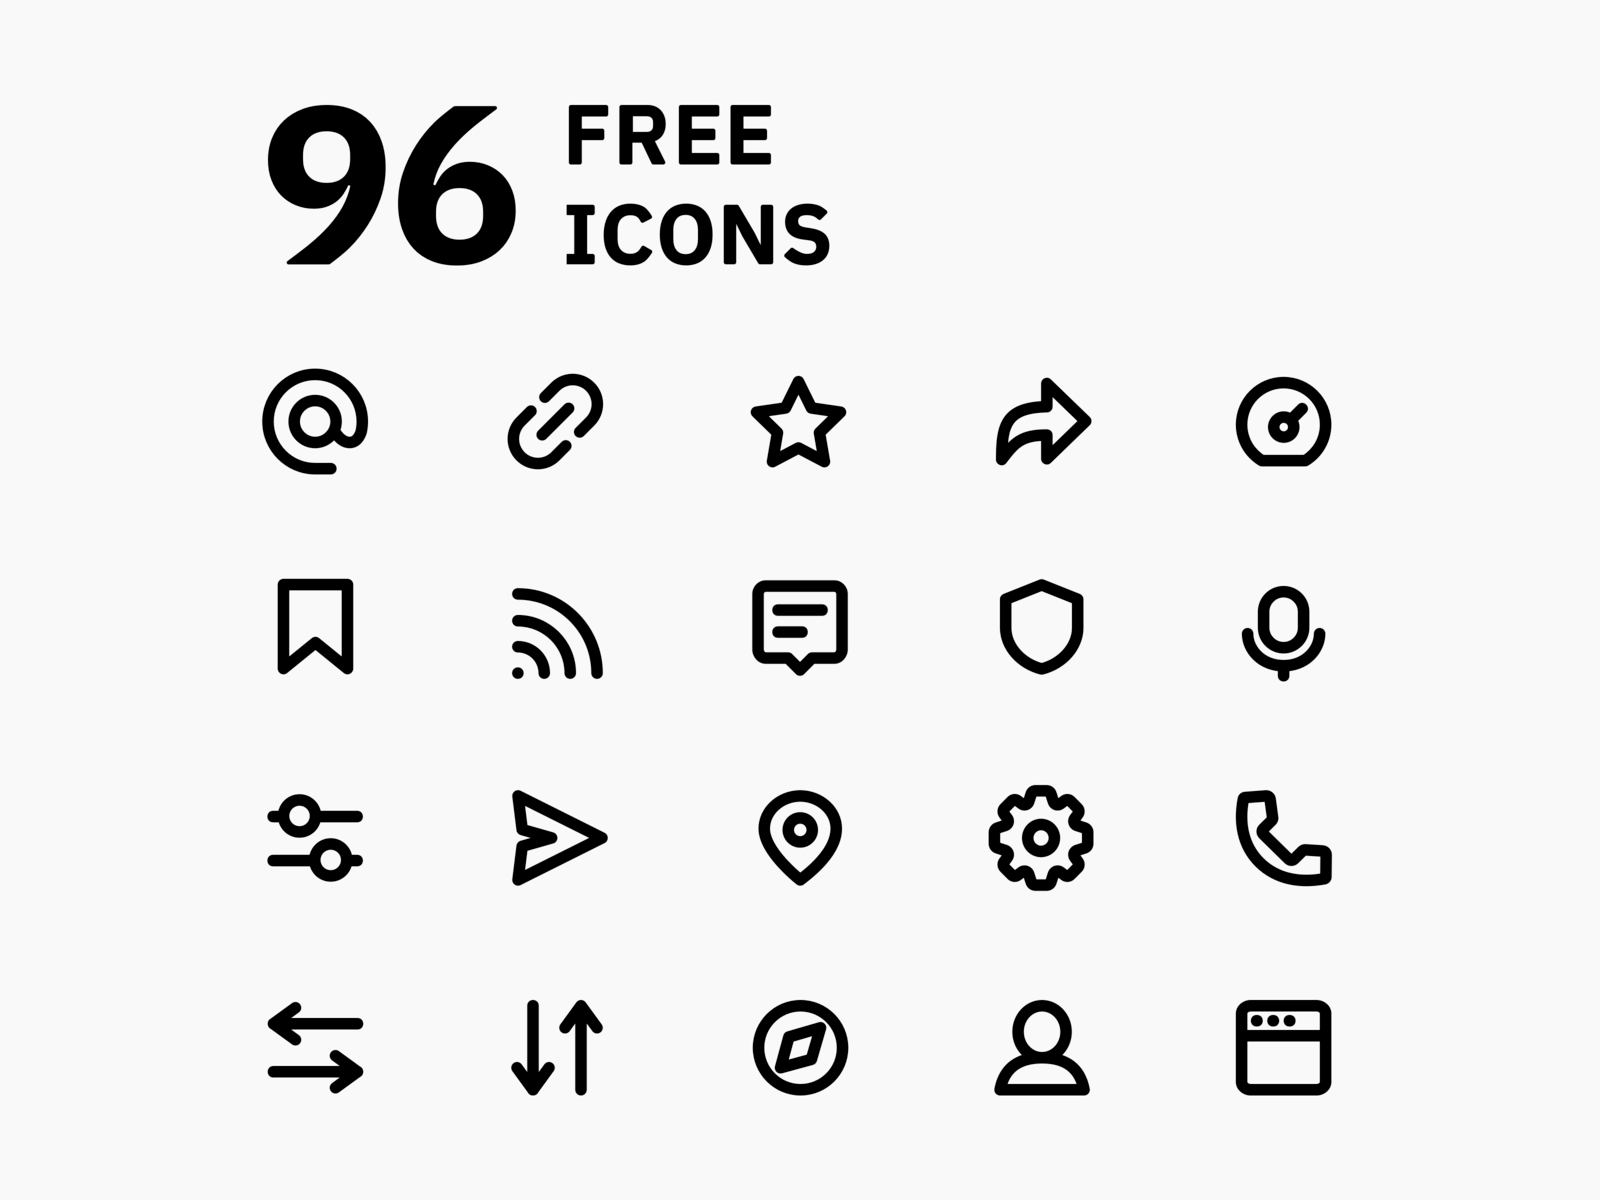 Super Basic Icons - Free Version cover image